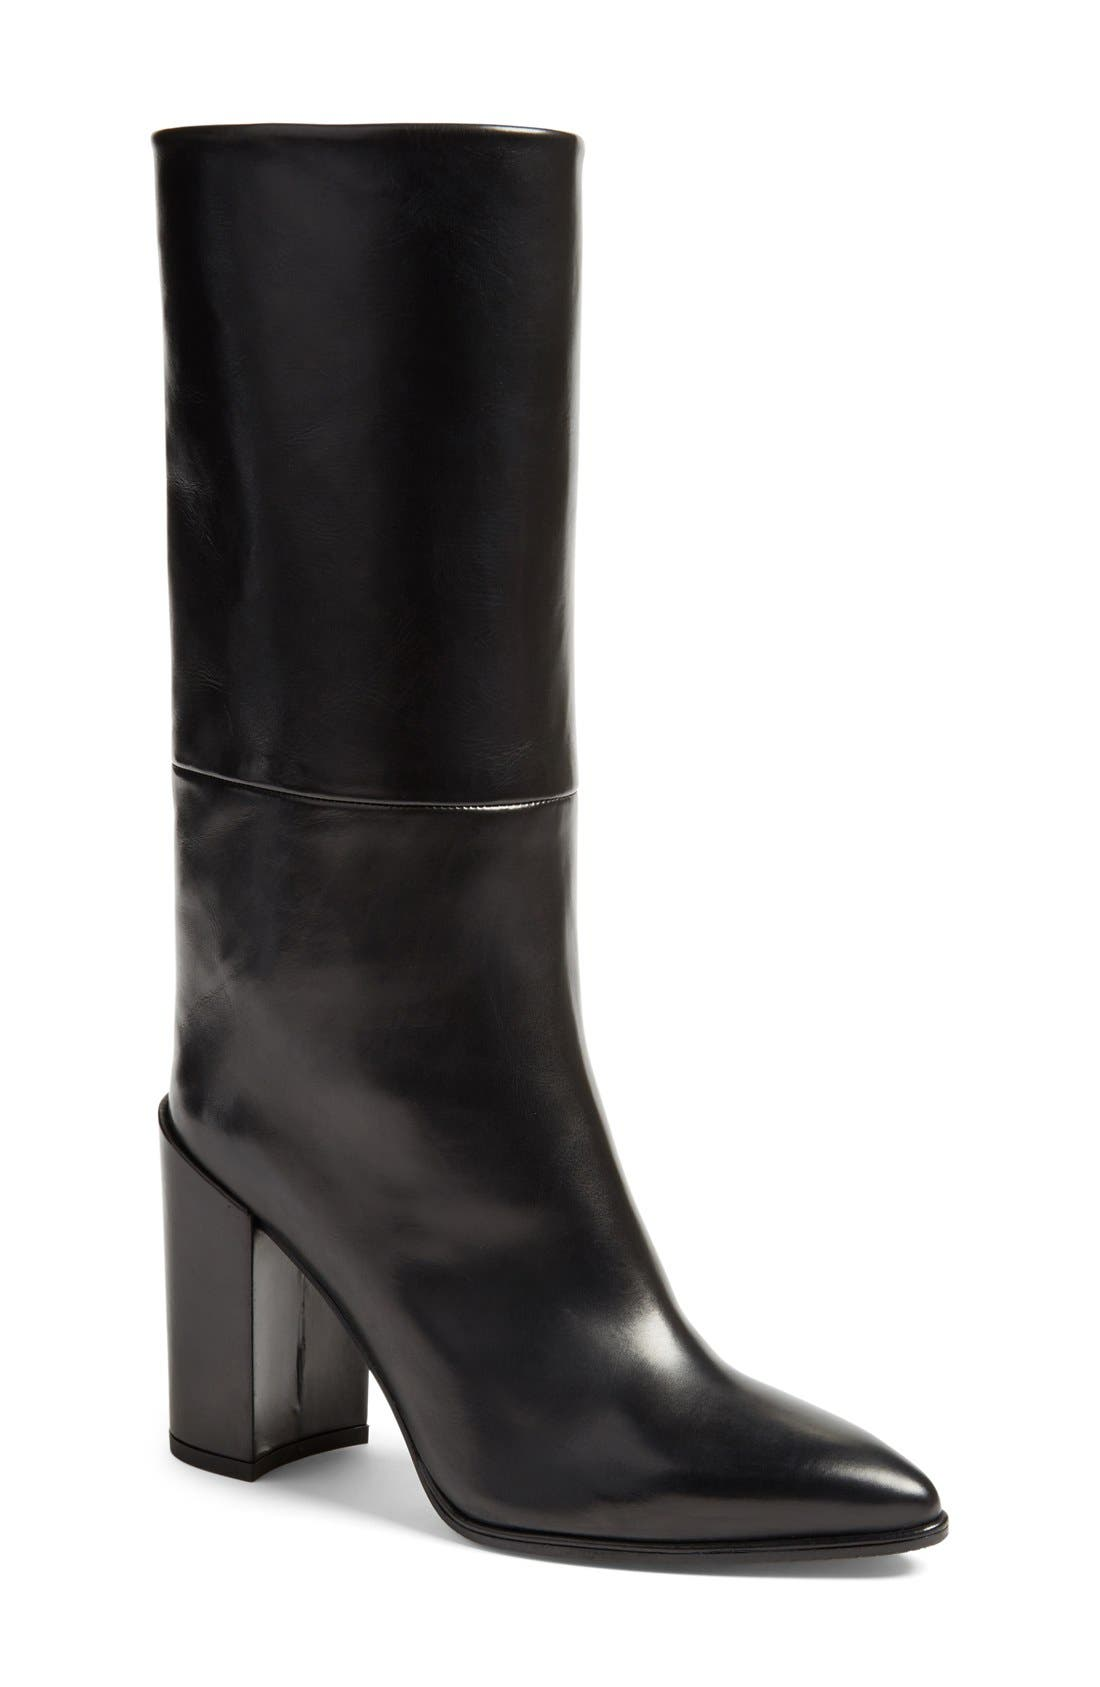 Main Image - Stuart Weitzman 'Straighten' Pointy Toe Boot (Women)